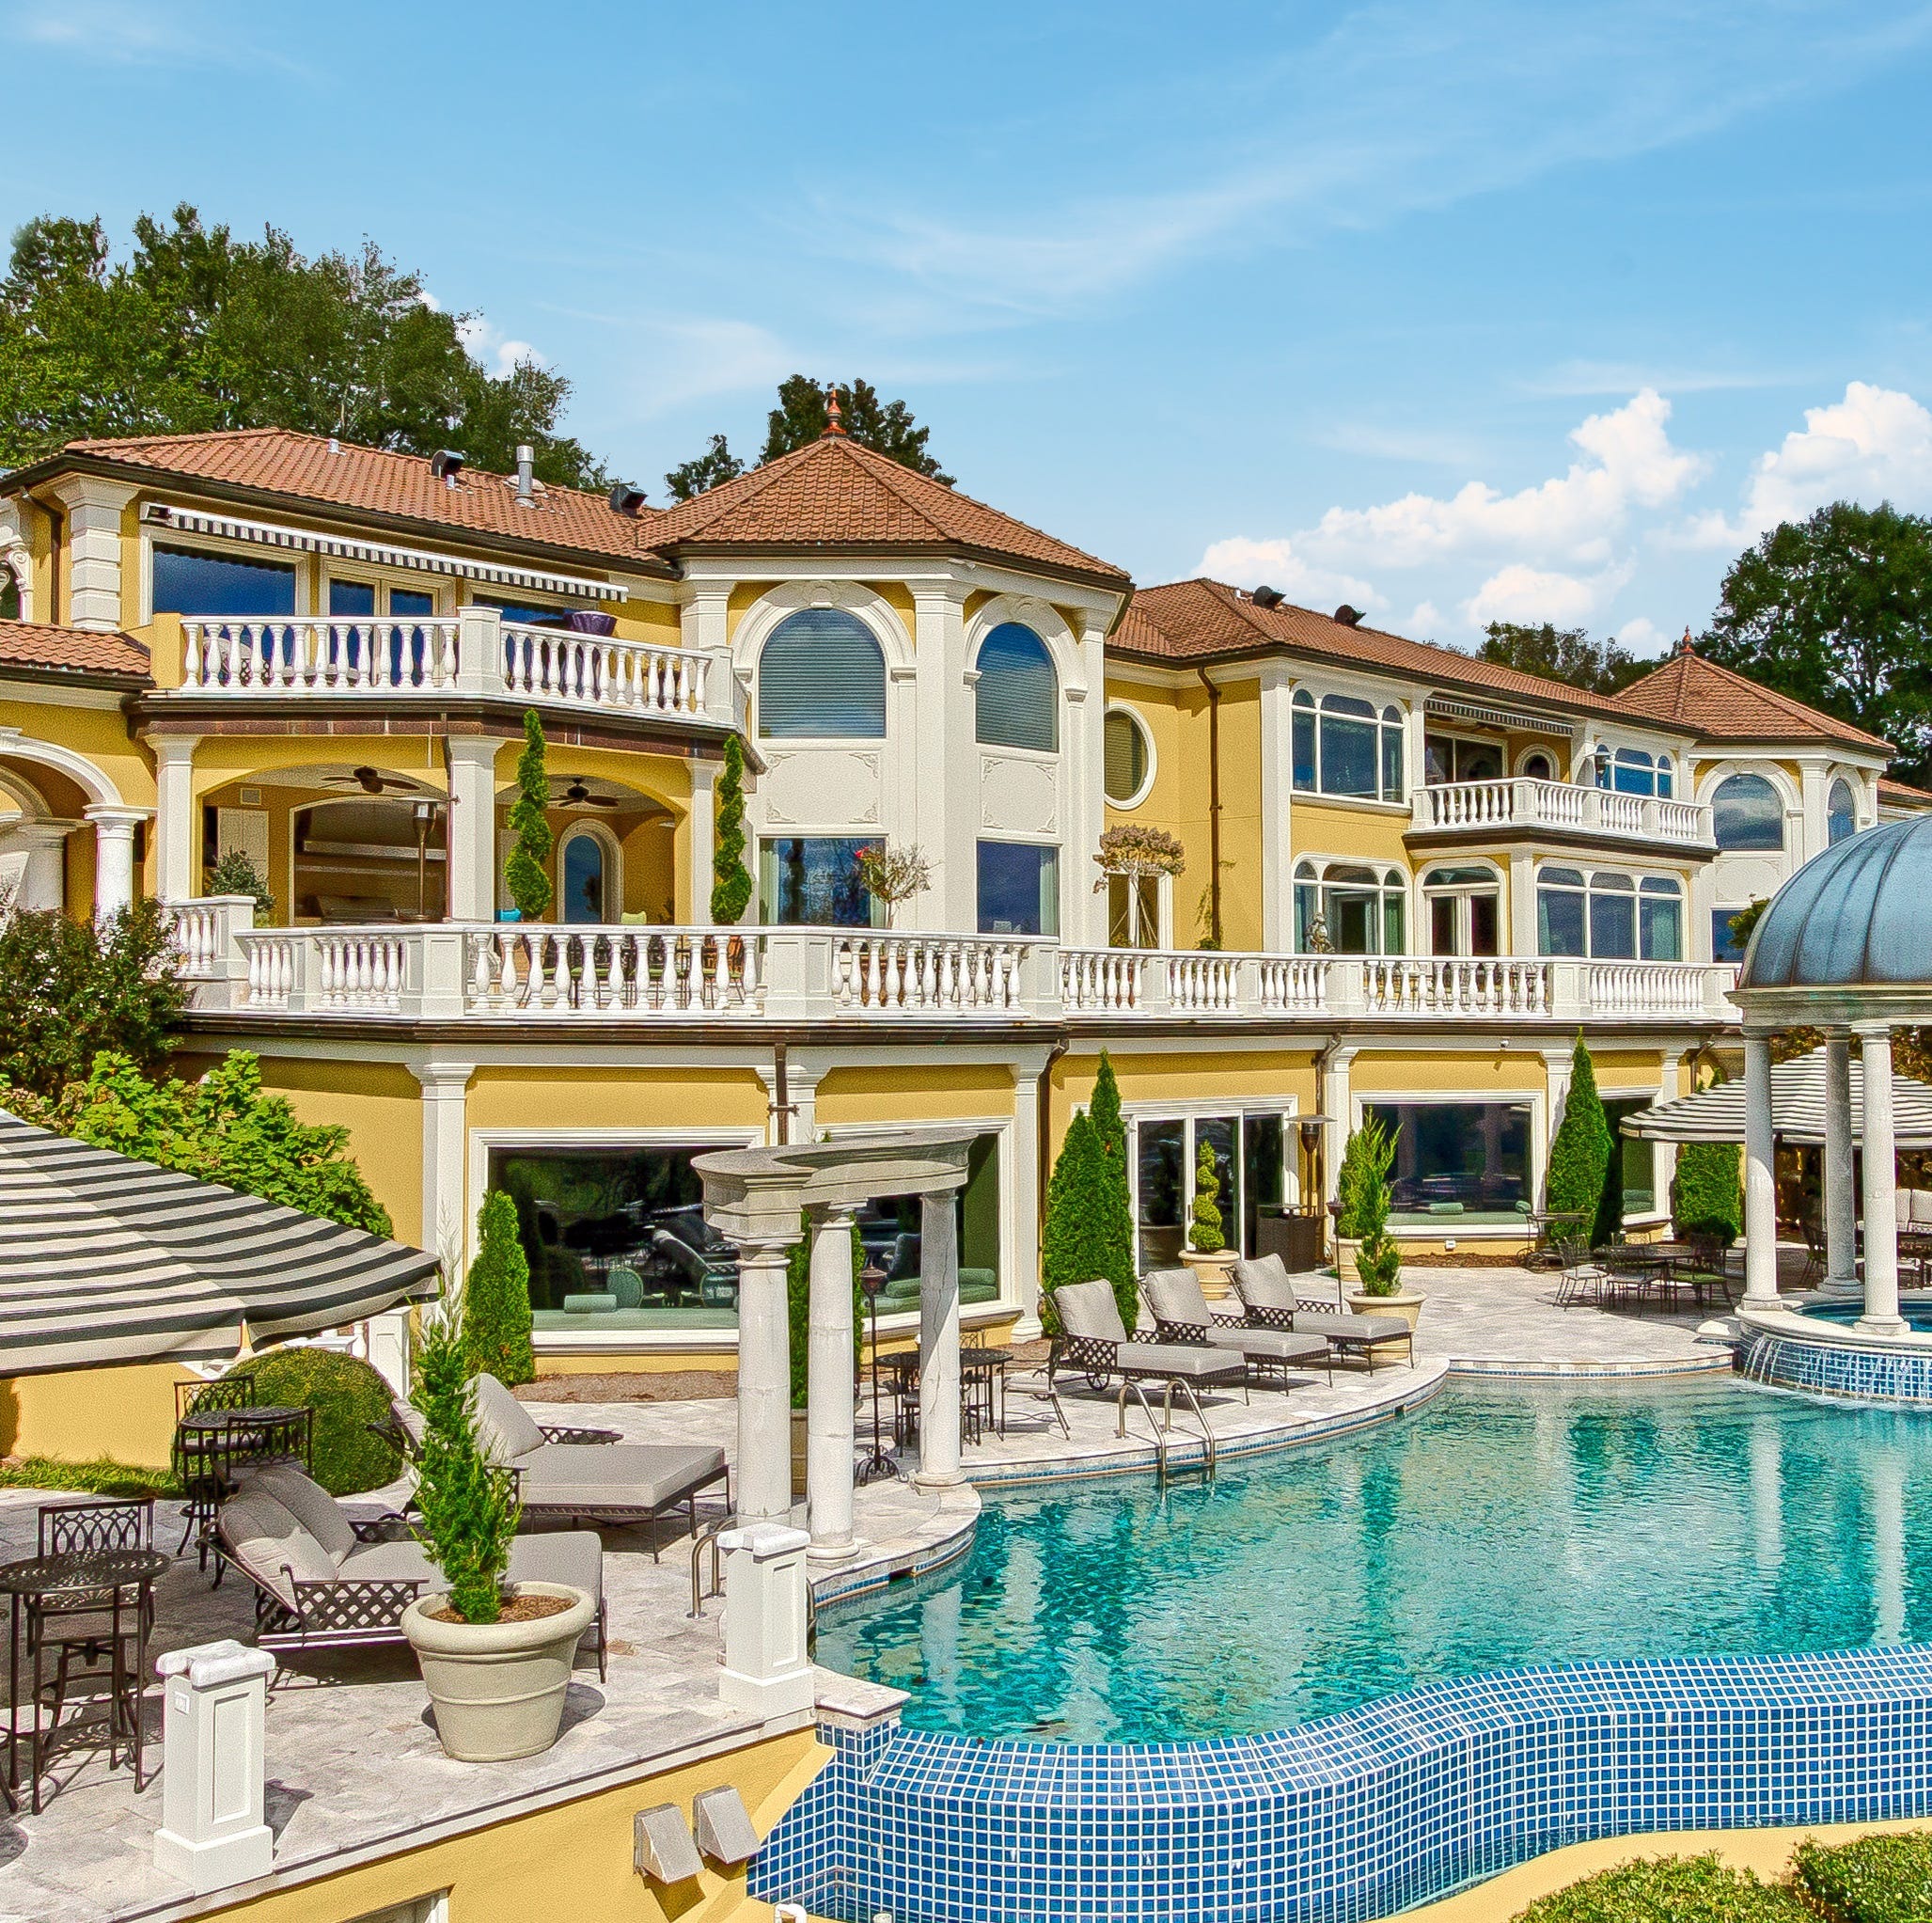 Knoxville's largest mansion Villa Collina goes green for big savings